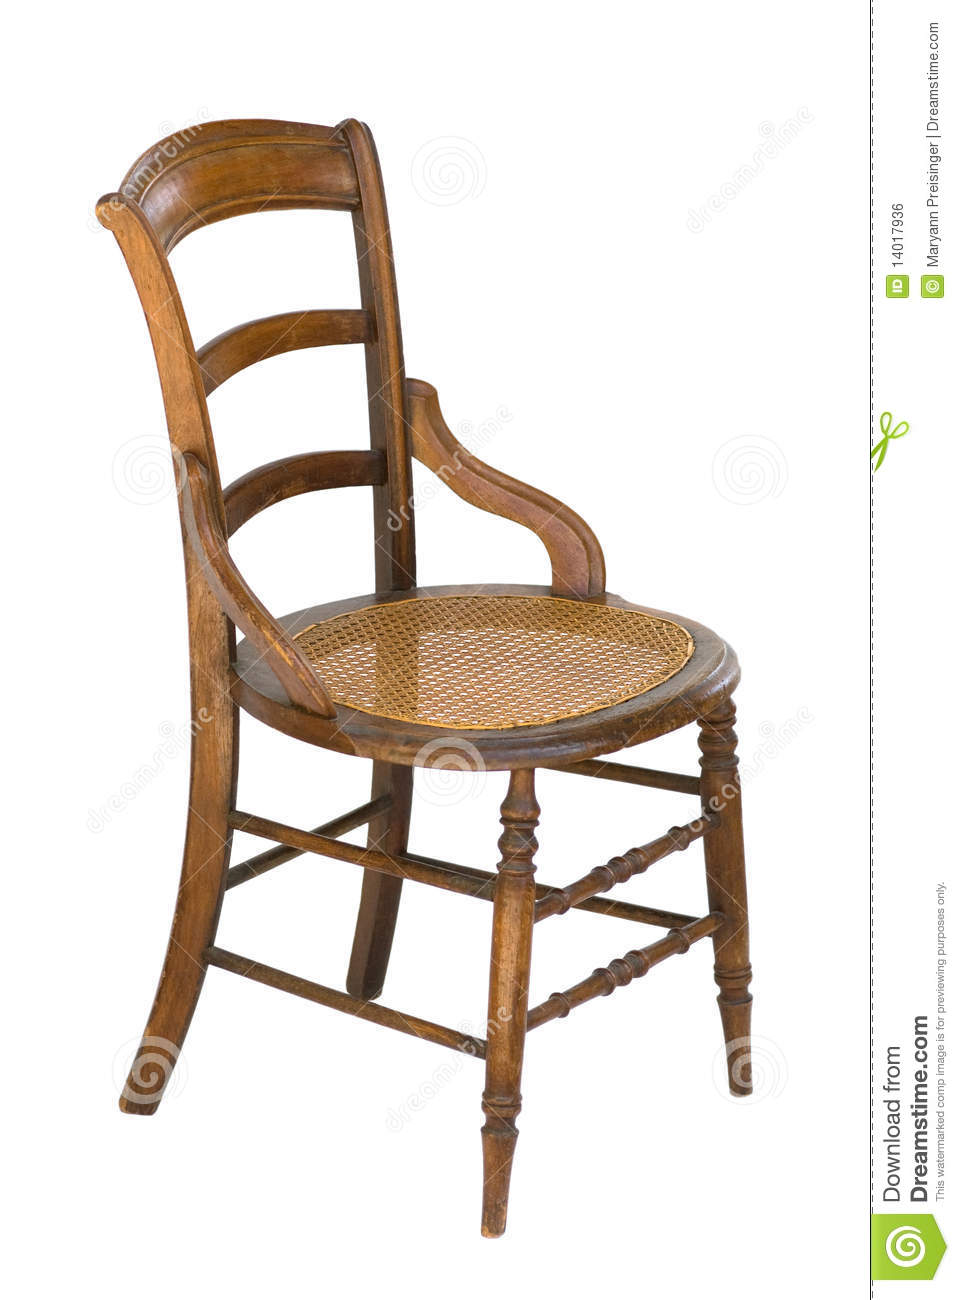 Cane seat antique wood vintage chair - isolated - Cane Seat Antique Wood  Vintage Chair - - Antique Wooden Chairs Antique Furniture